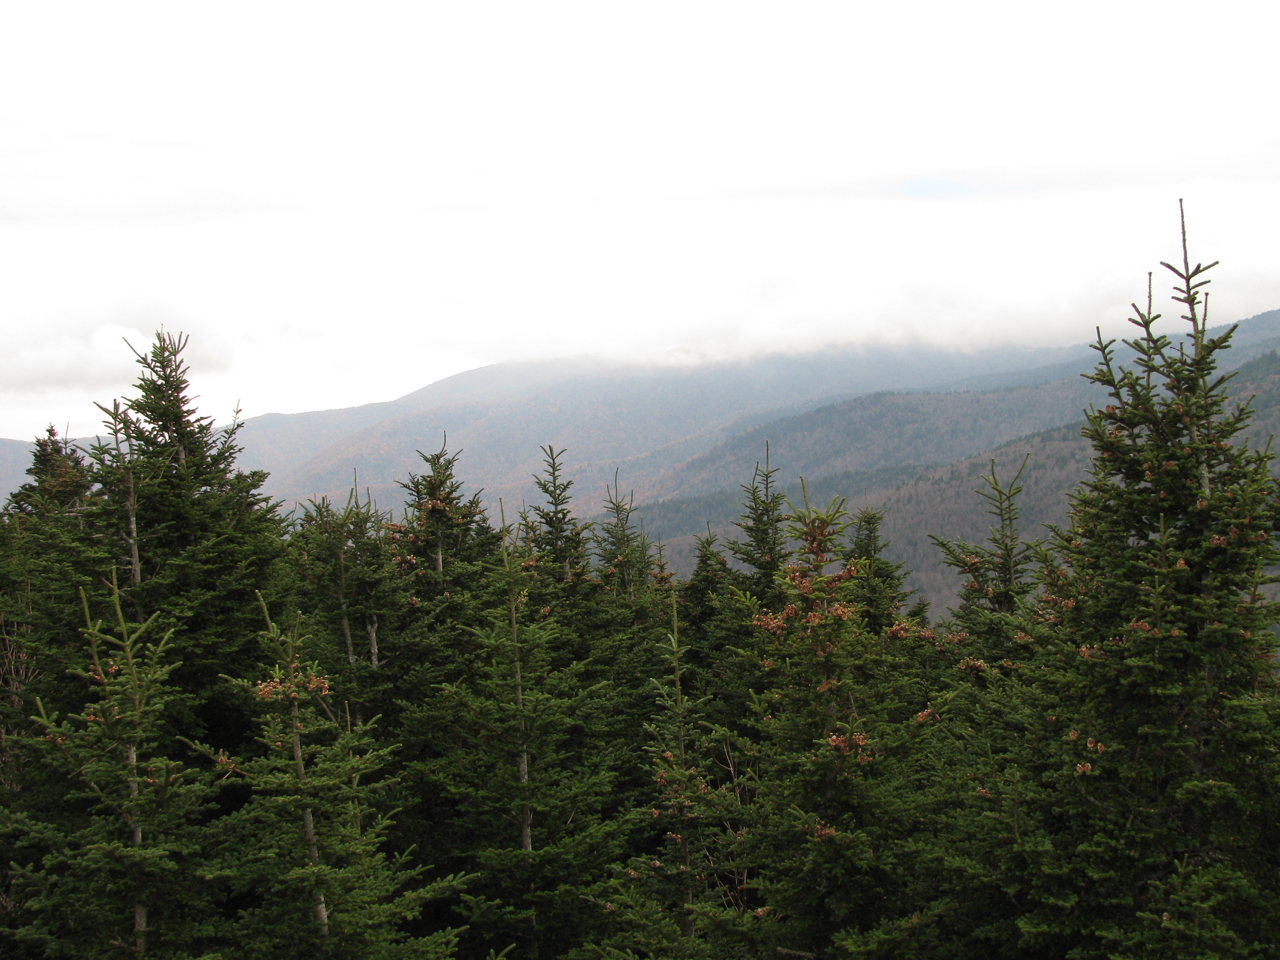 The Scientific Name is Abies fraseri. You will likely hear them called Fraser Fir, Southern Balsam, She Balsam. This picture shows the  of Abies fraseri